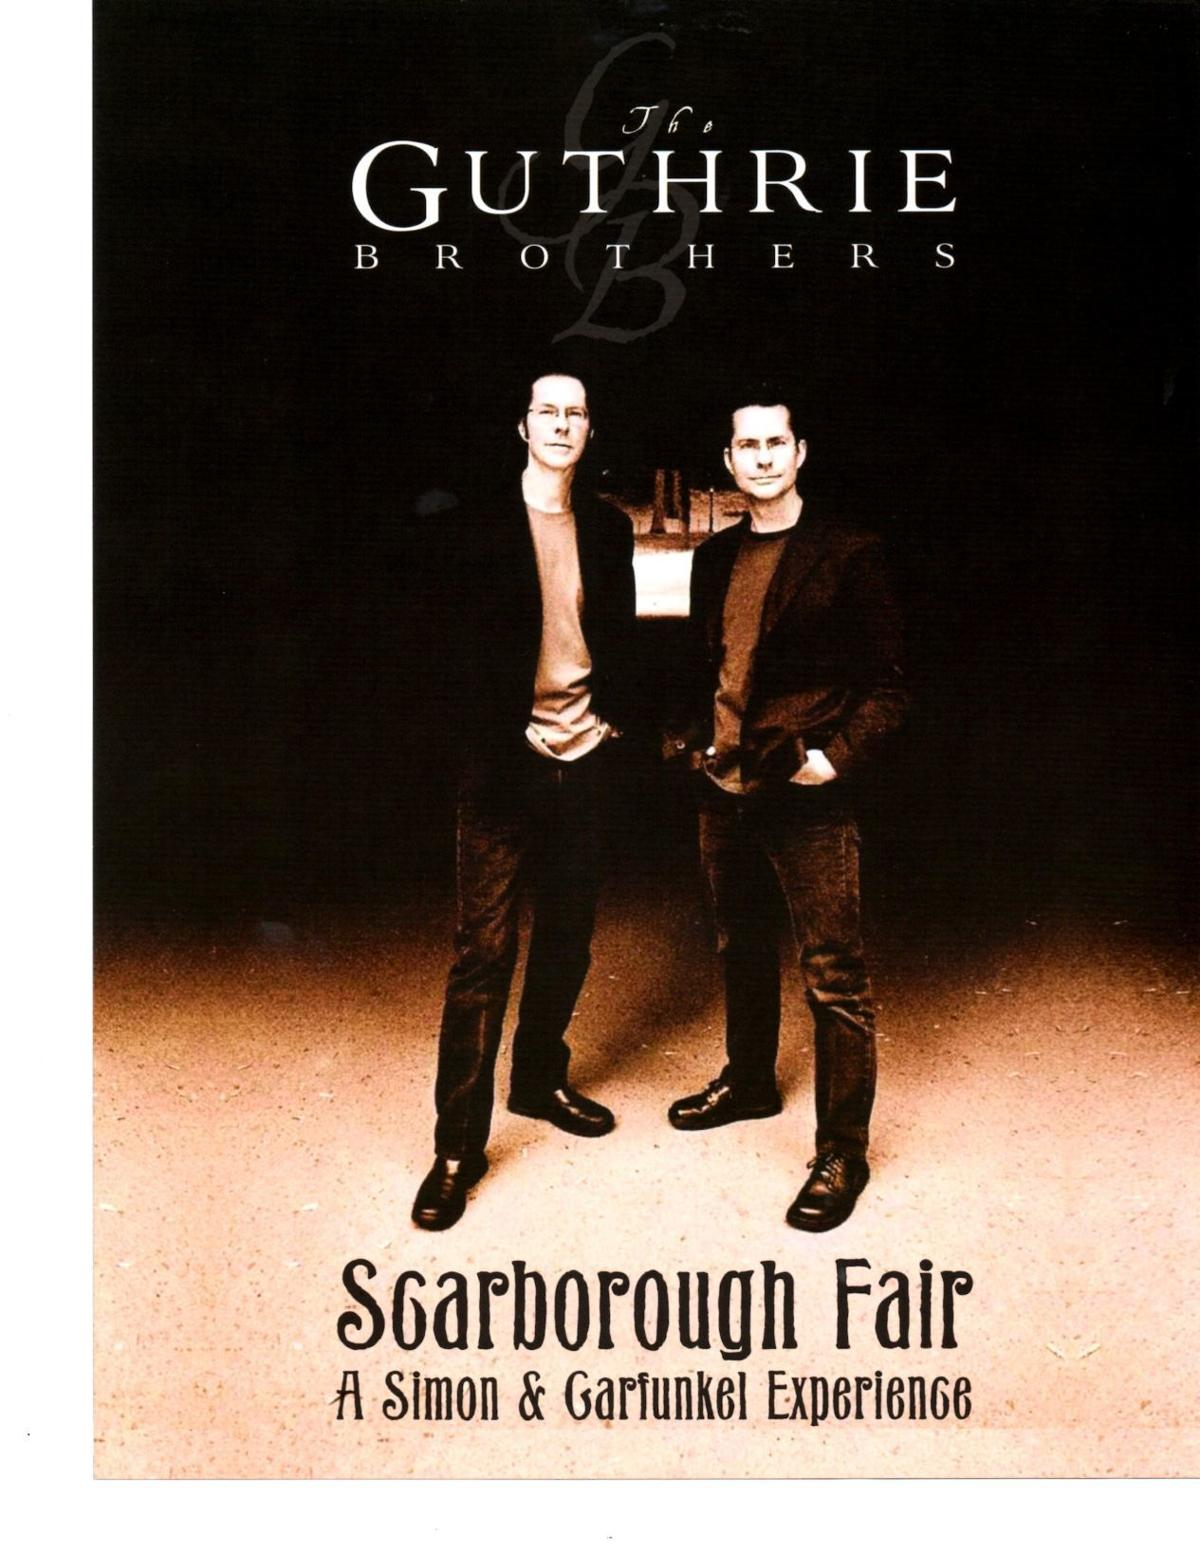 Guthrie brothers